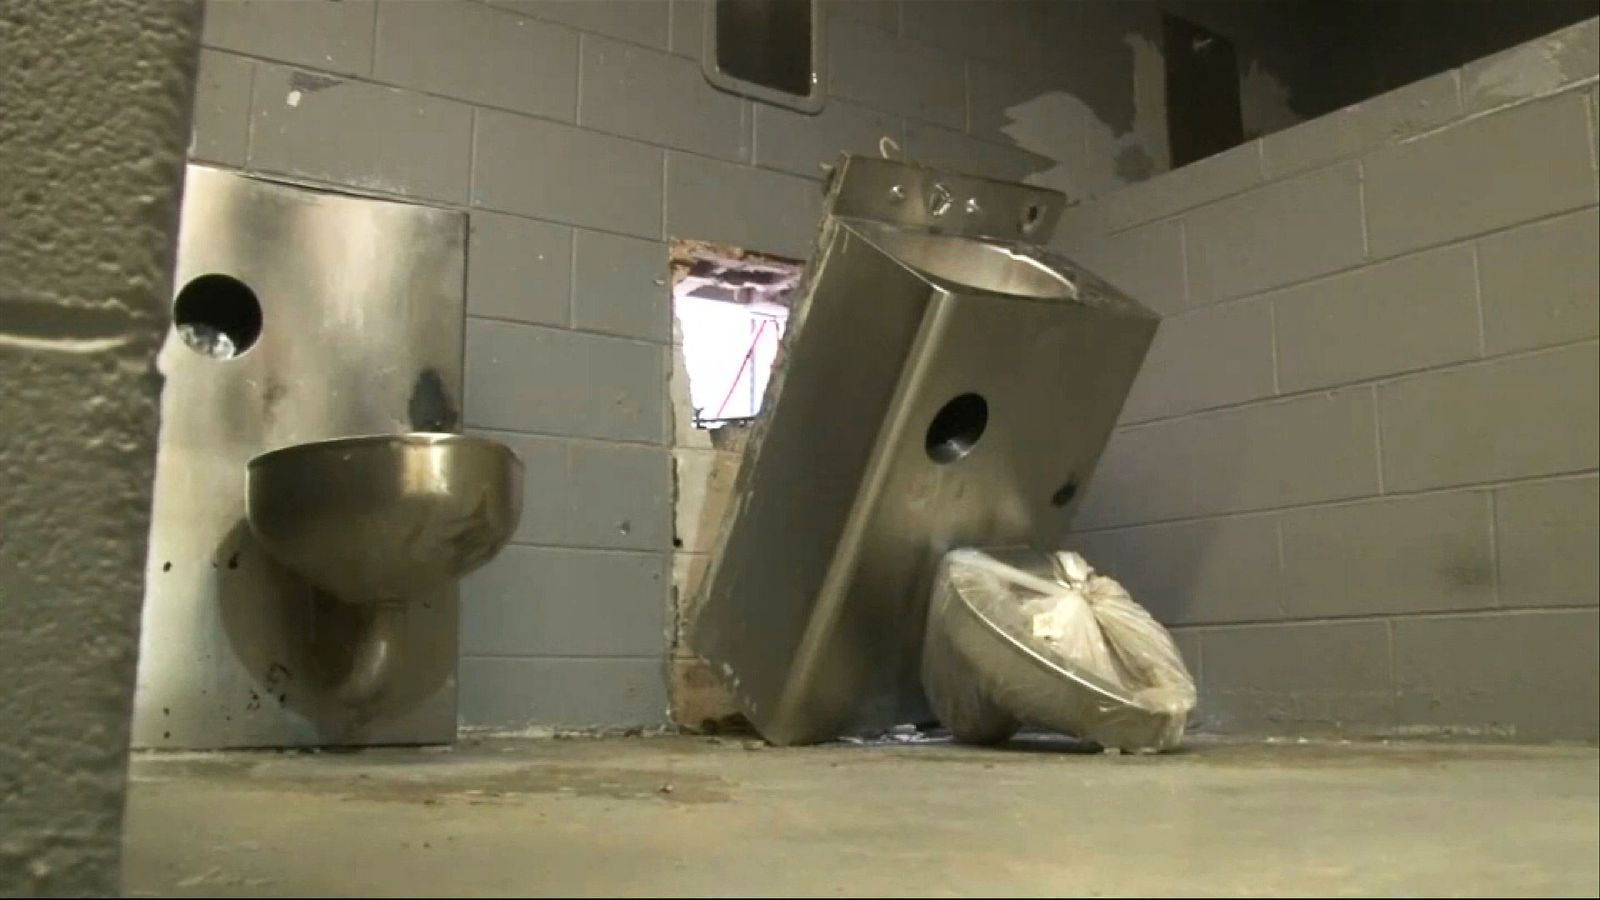 Six inmates escape through toilet in Tennessee prison